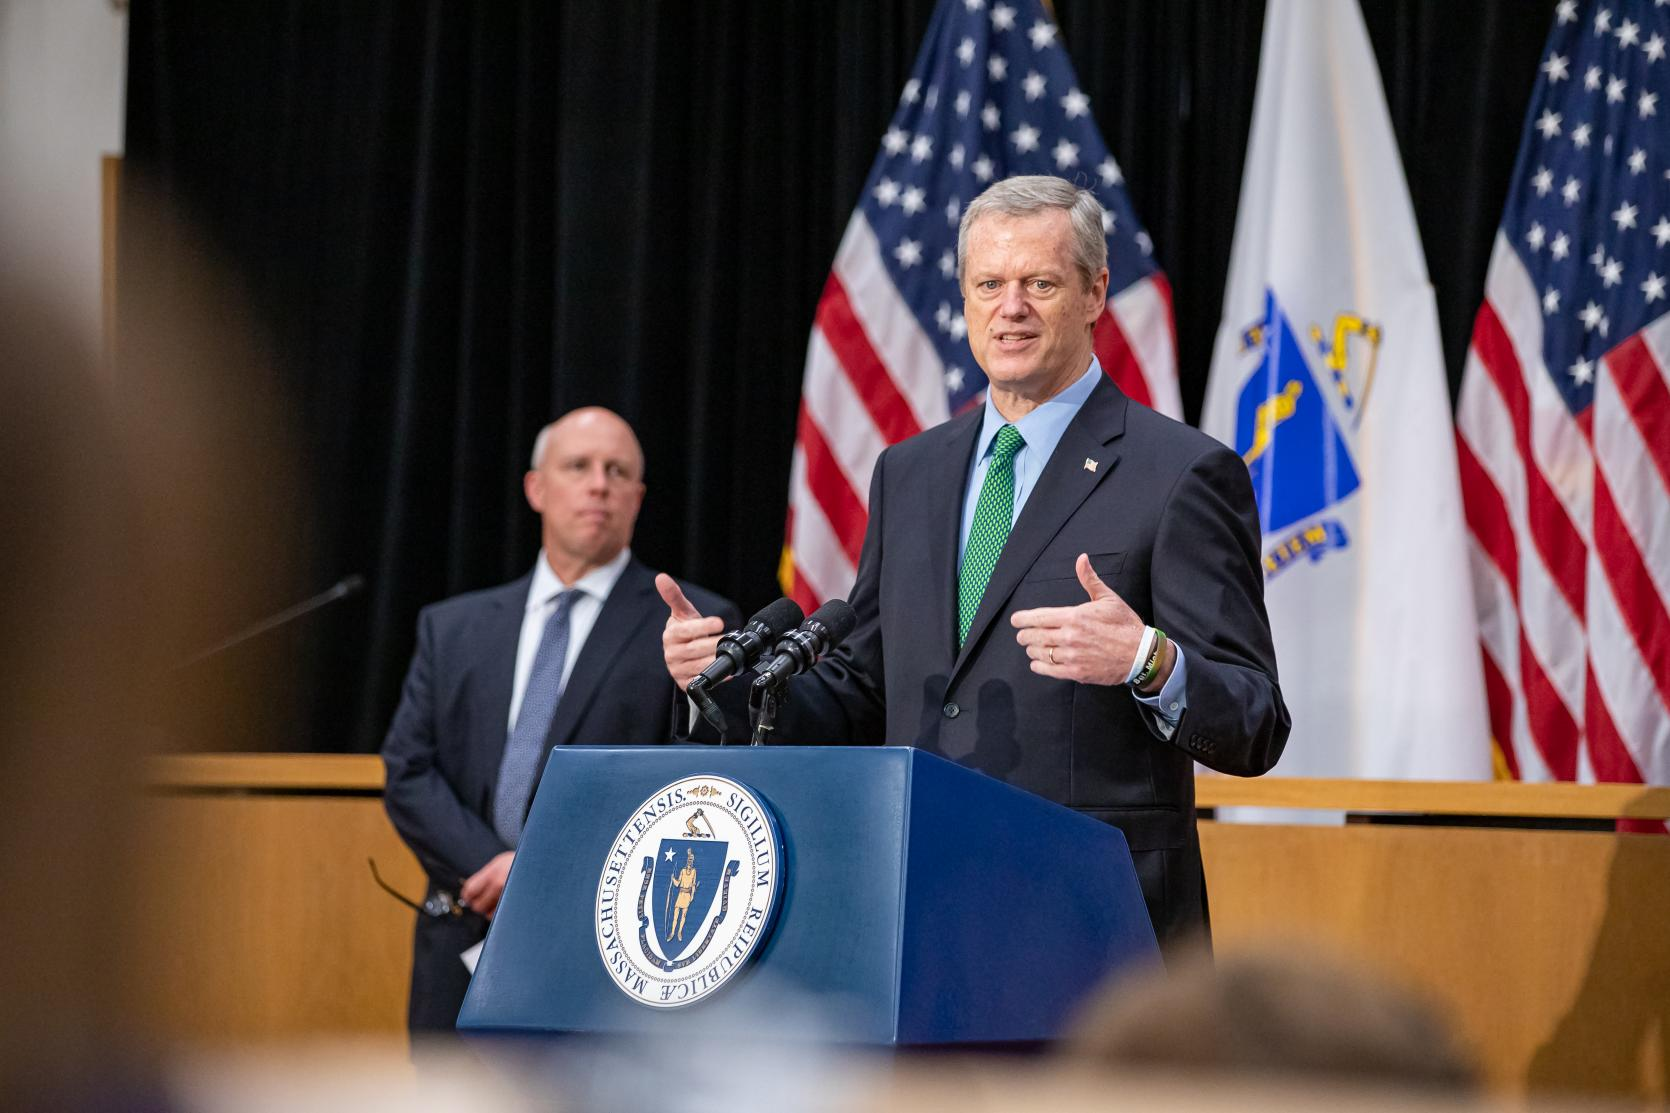 Reopening Massachusetts: Baker-Polito Administration Initiates Transition to Third Phase of Four-Phase Approach